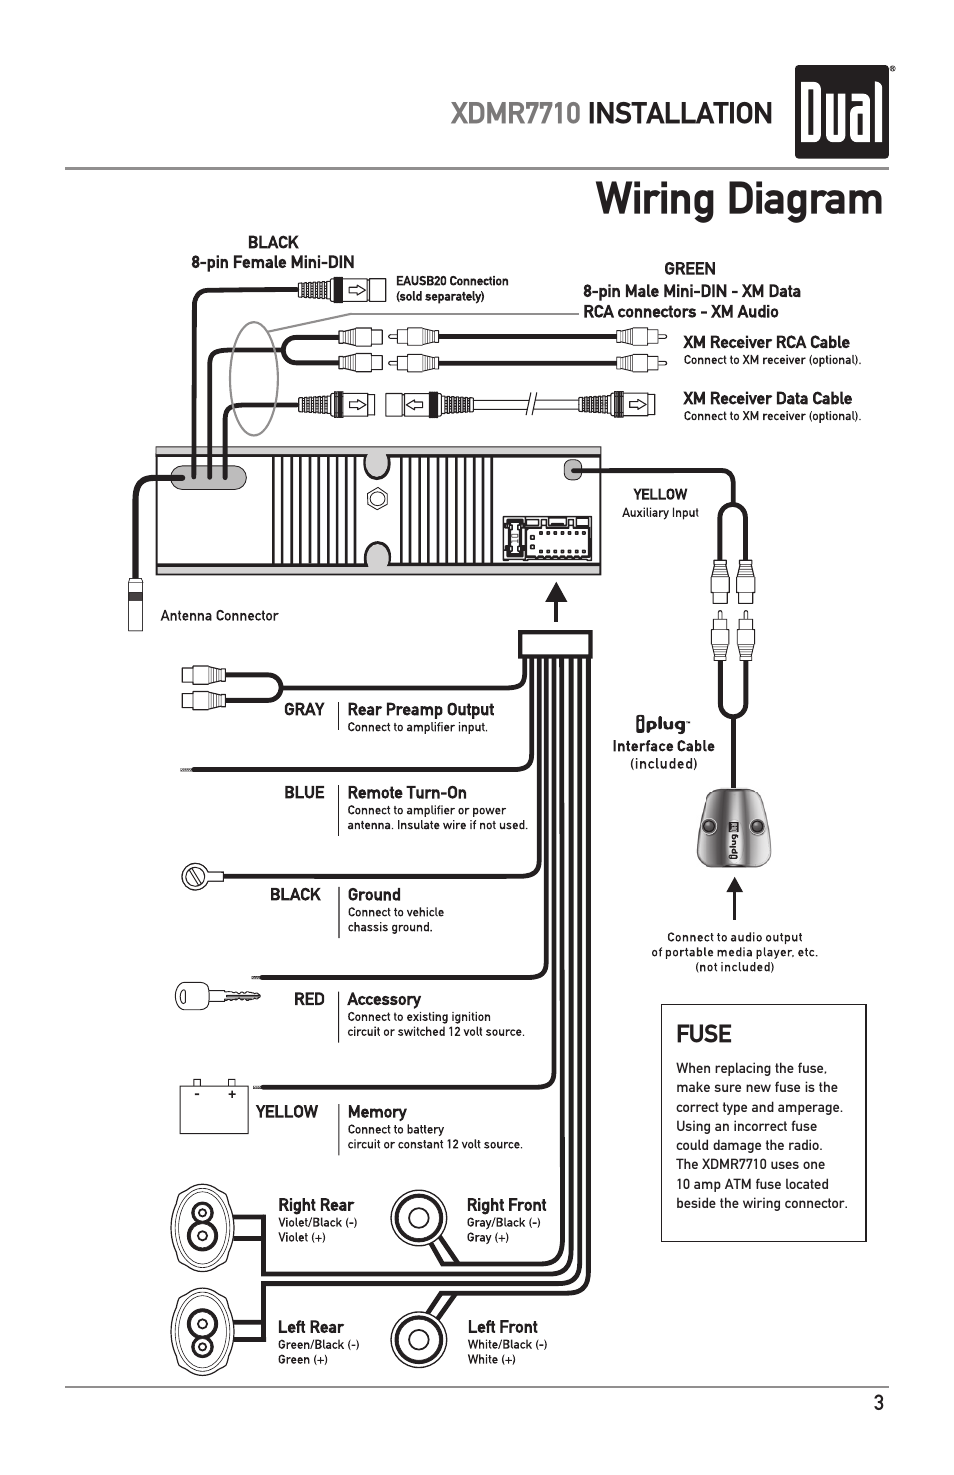 Dual Xdmr7710 Wiring Diagram Libraries Wire Harness Schematic Xdma6855 Iplug User Manual Page 3 24dual 1